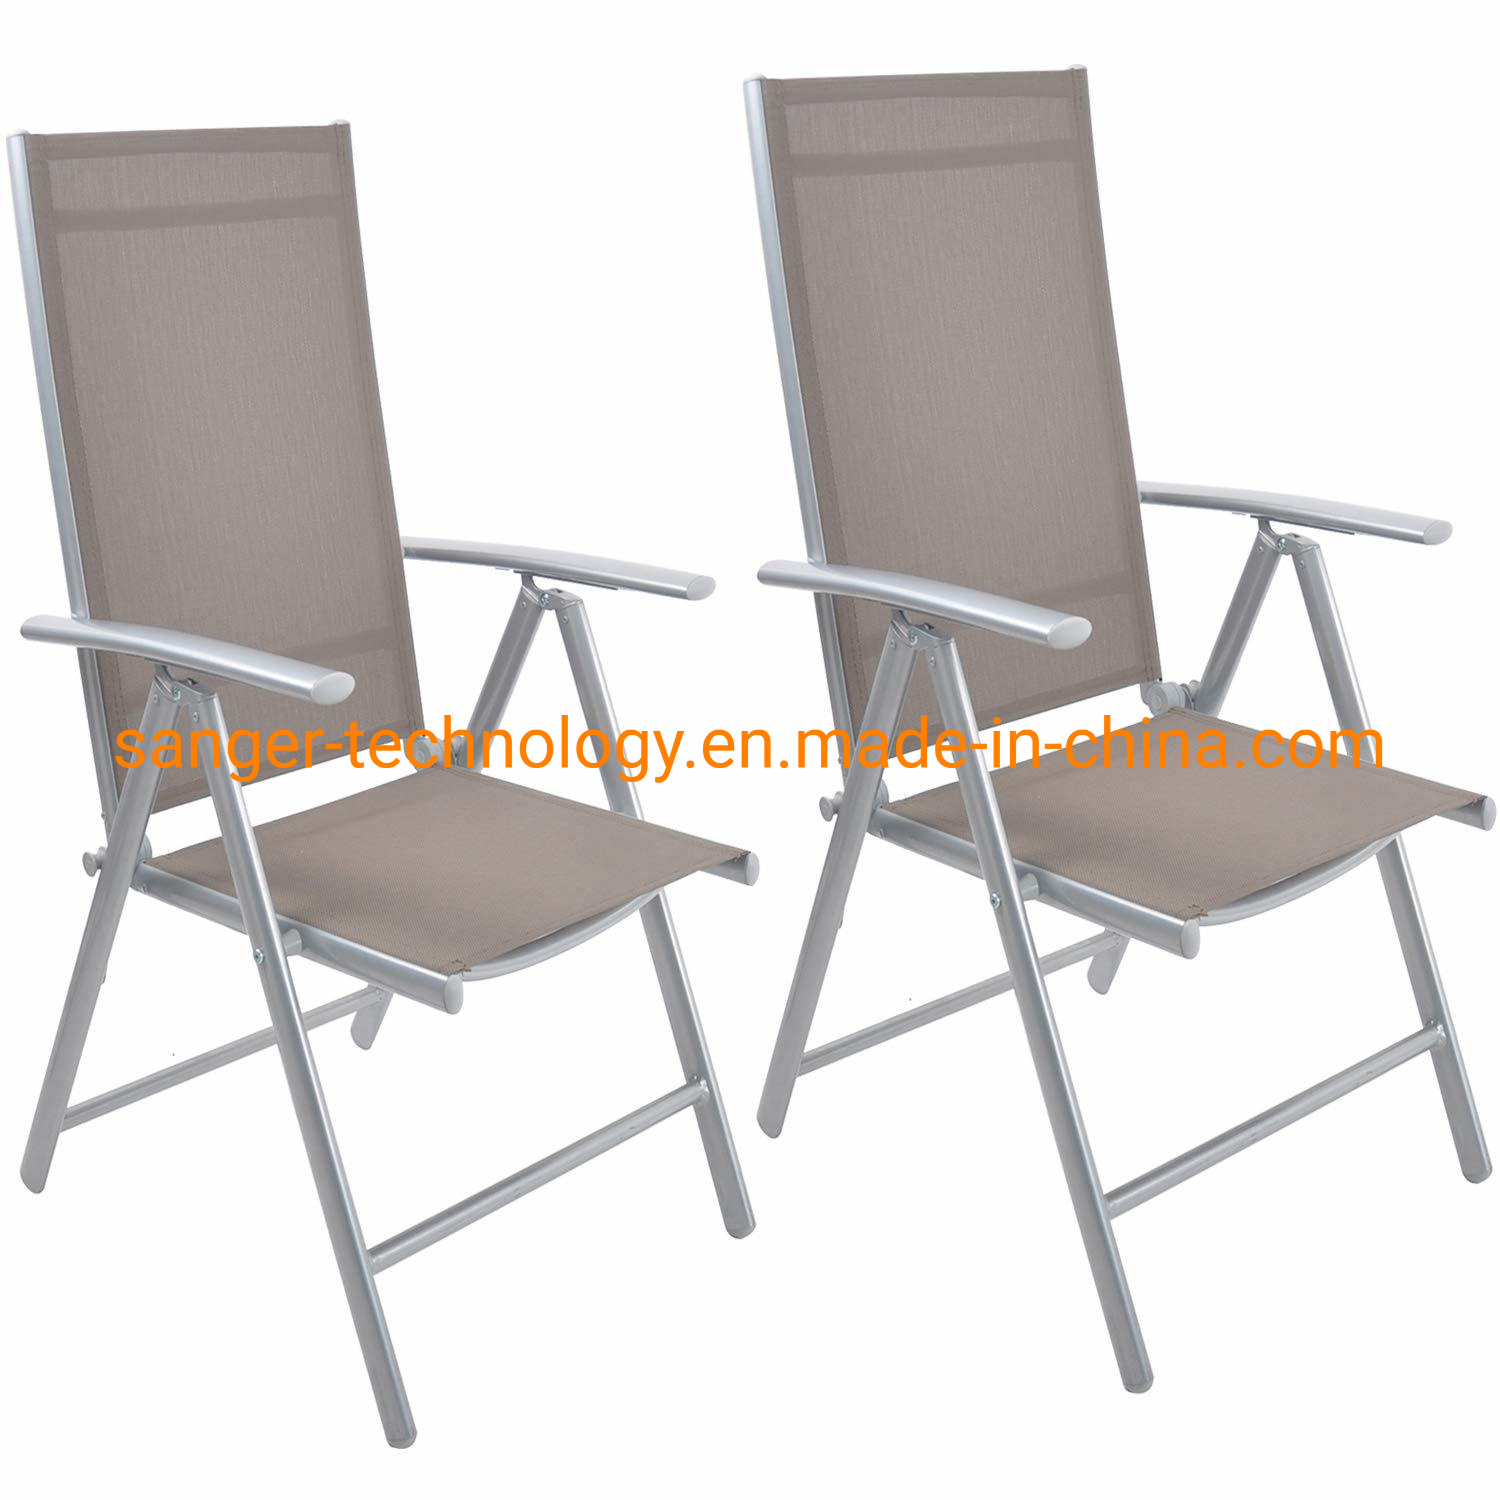 Hot Item Folding Sling Chair Patio Adjustable Reclining Back Sturdy Aluminum Frame With Armrest Indoor Outdoor Furniture Garden Pool Bench Gary